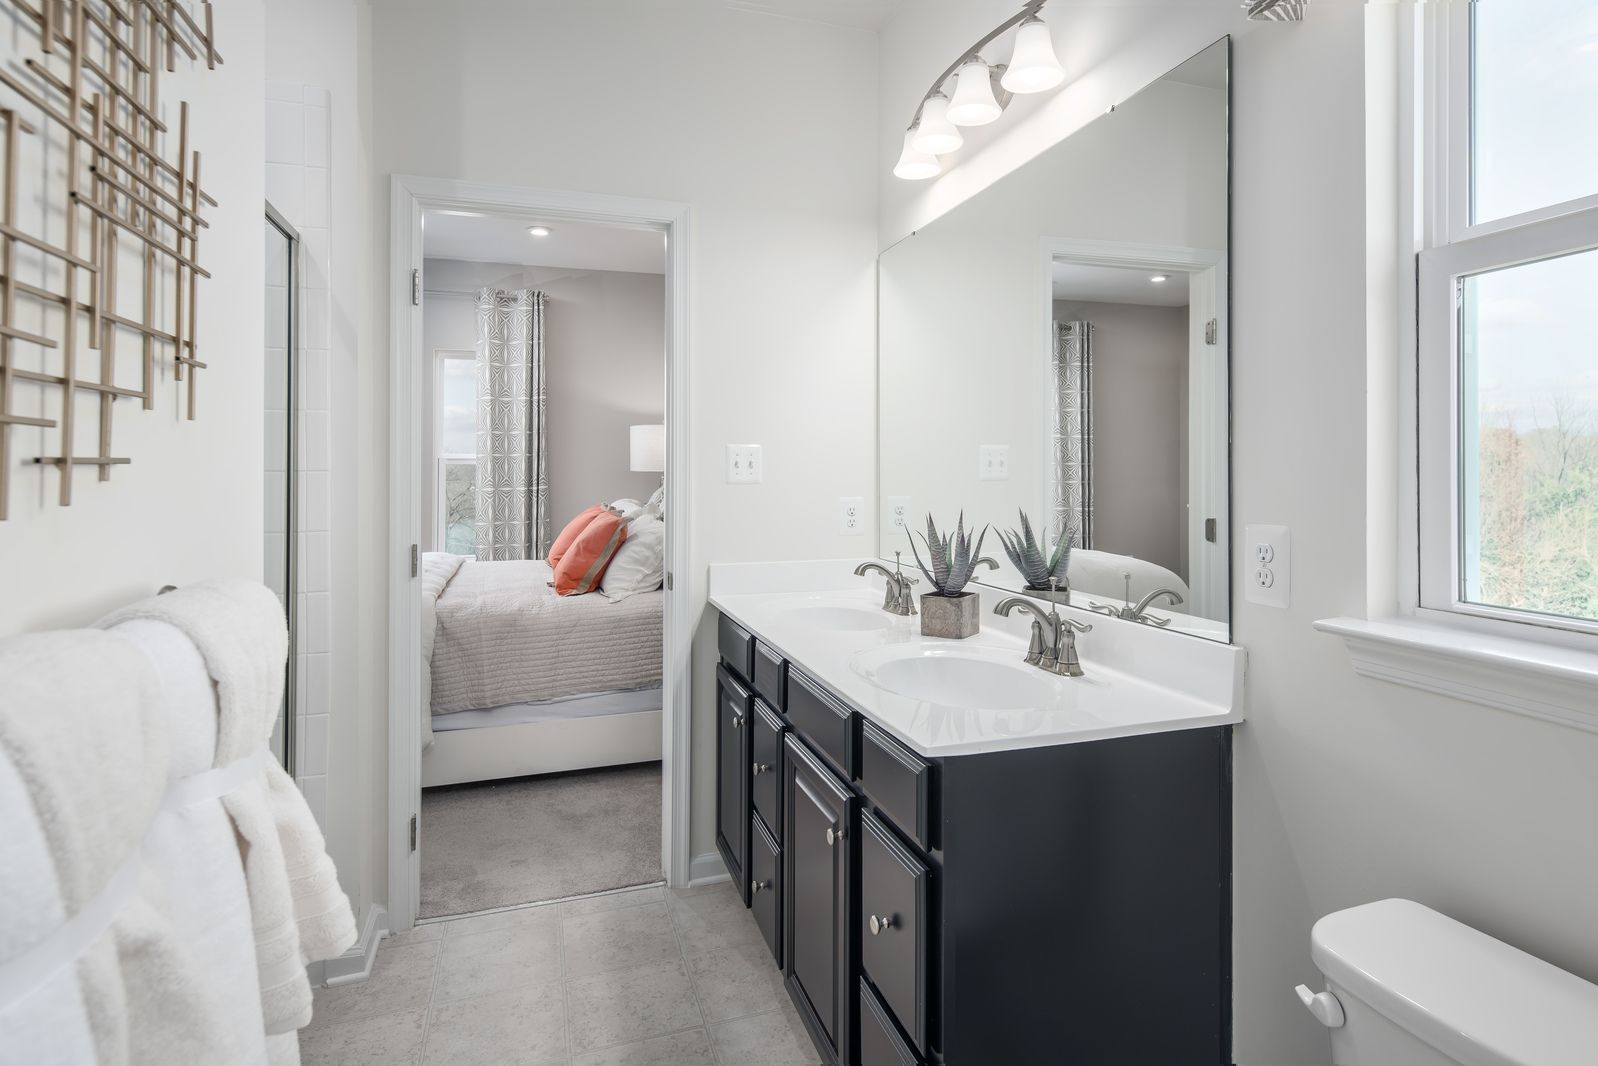 Bathroom featured in the Clarendon 3 Story By Ryan Homes in Baltimore, MD